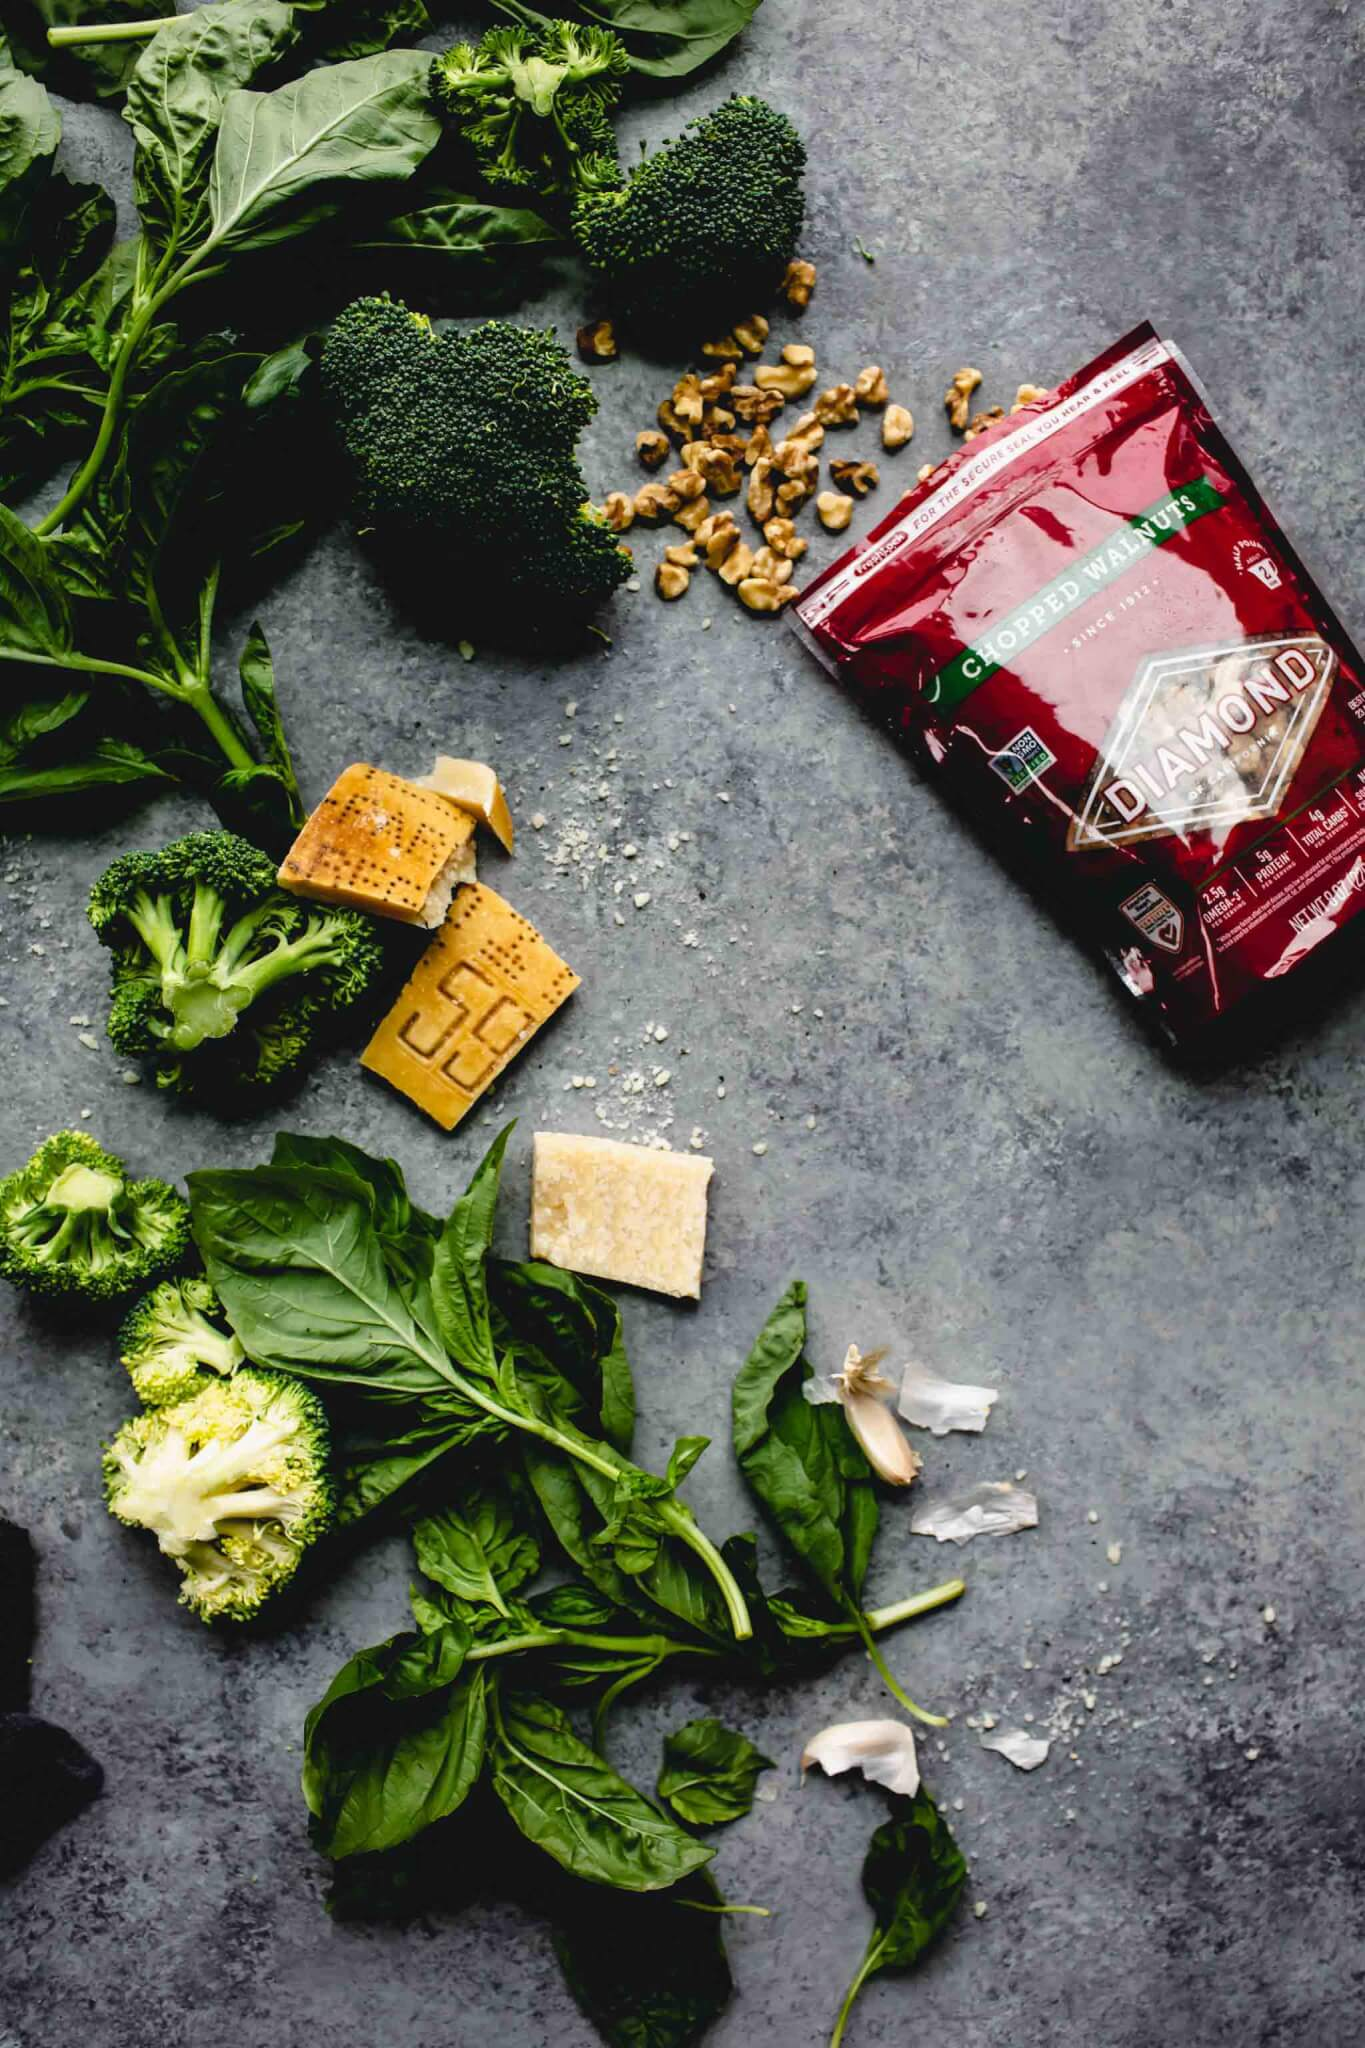 Ingredients for broccoli pesto laid out on concrete background.